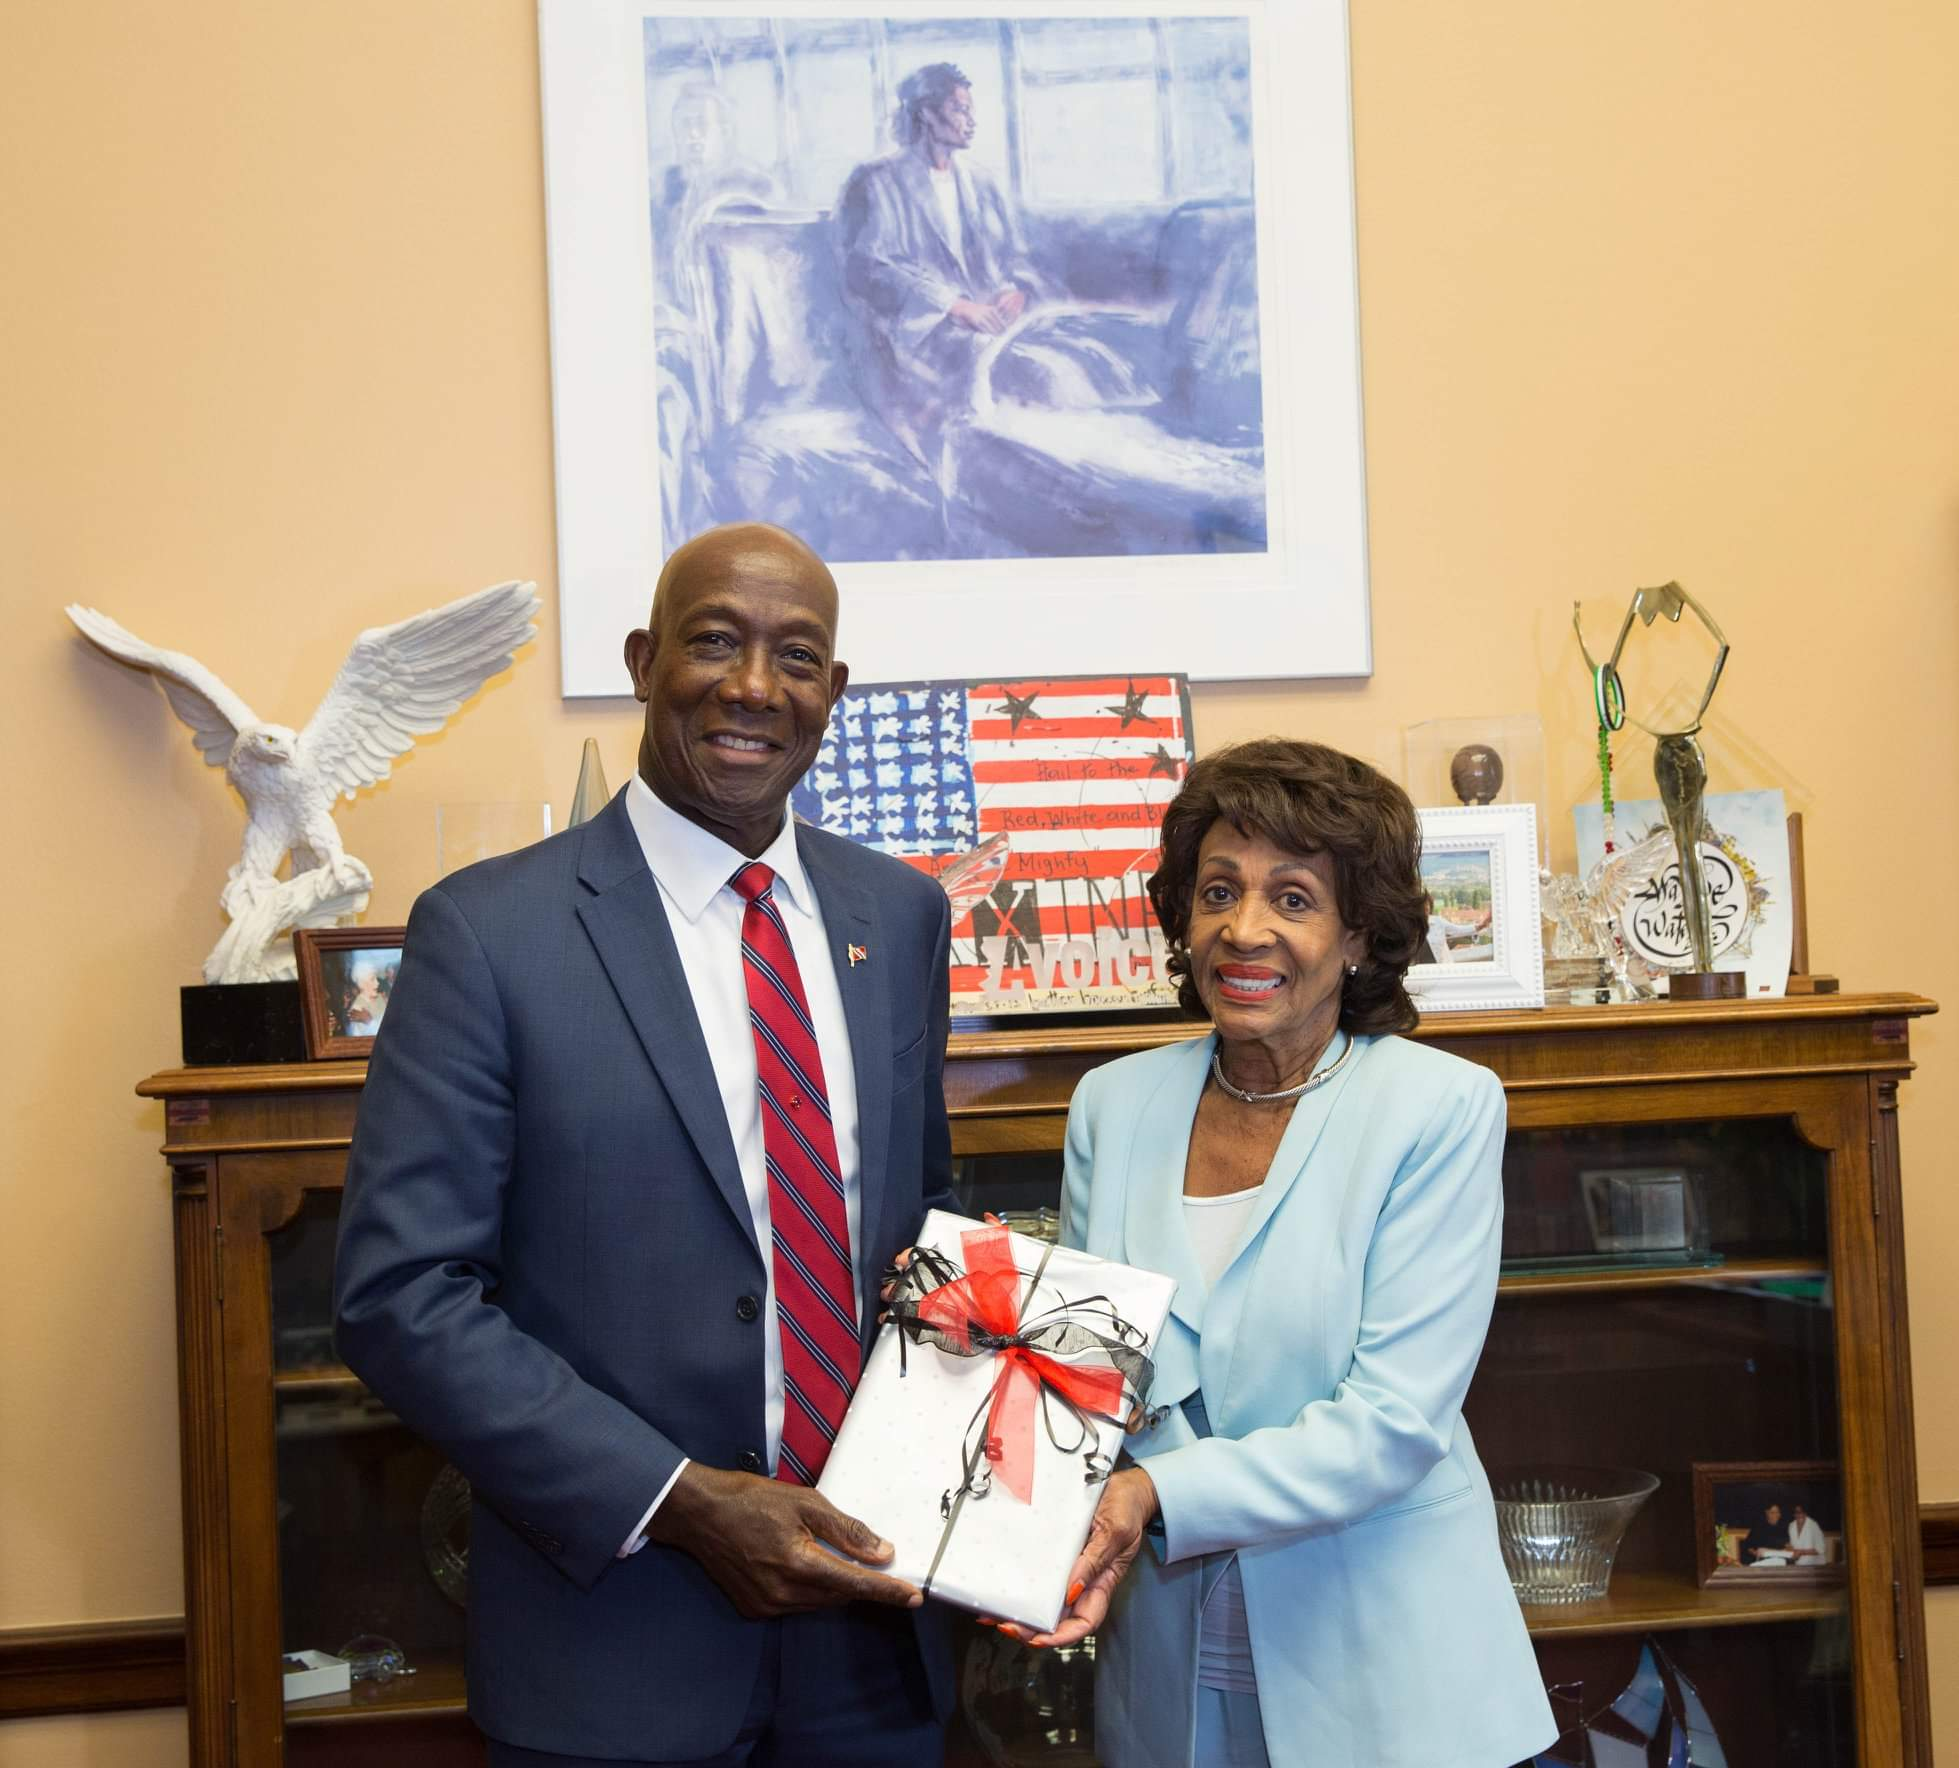 Camillle Moreno Attachments 11:03 AM (1 minute ago) to me  Prime Minister Dr the Hon Keith Rowley with Representative Maxine Waters (D-CA), Chairwoman of the House Financial Services Committee.